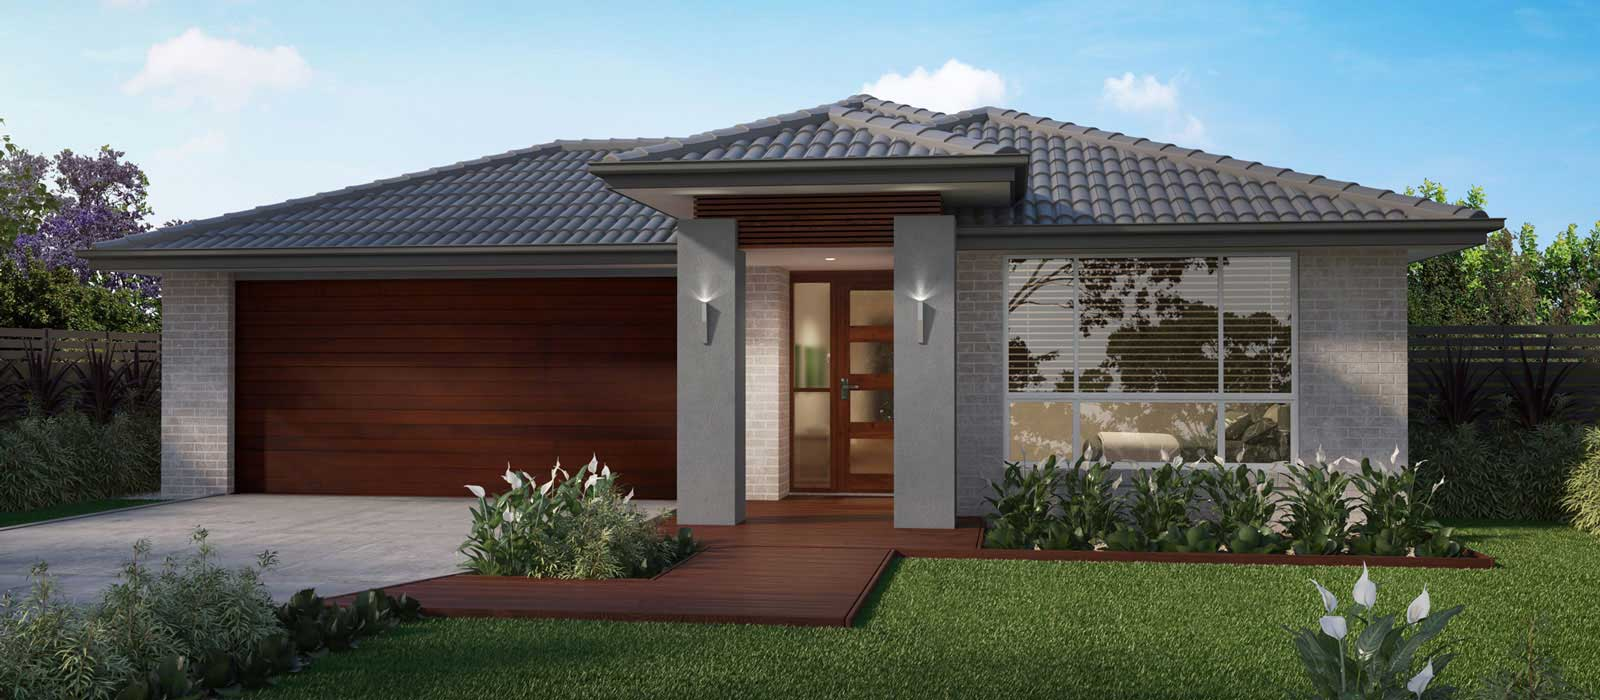 Tips to find New Home Builders, Vision Homes Maitland:-